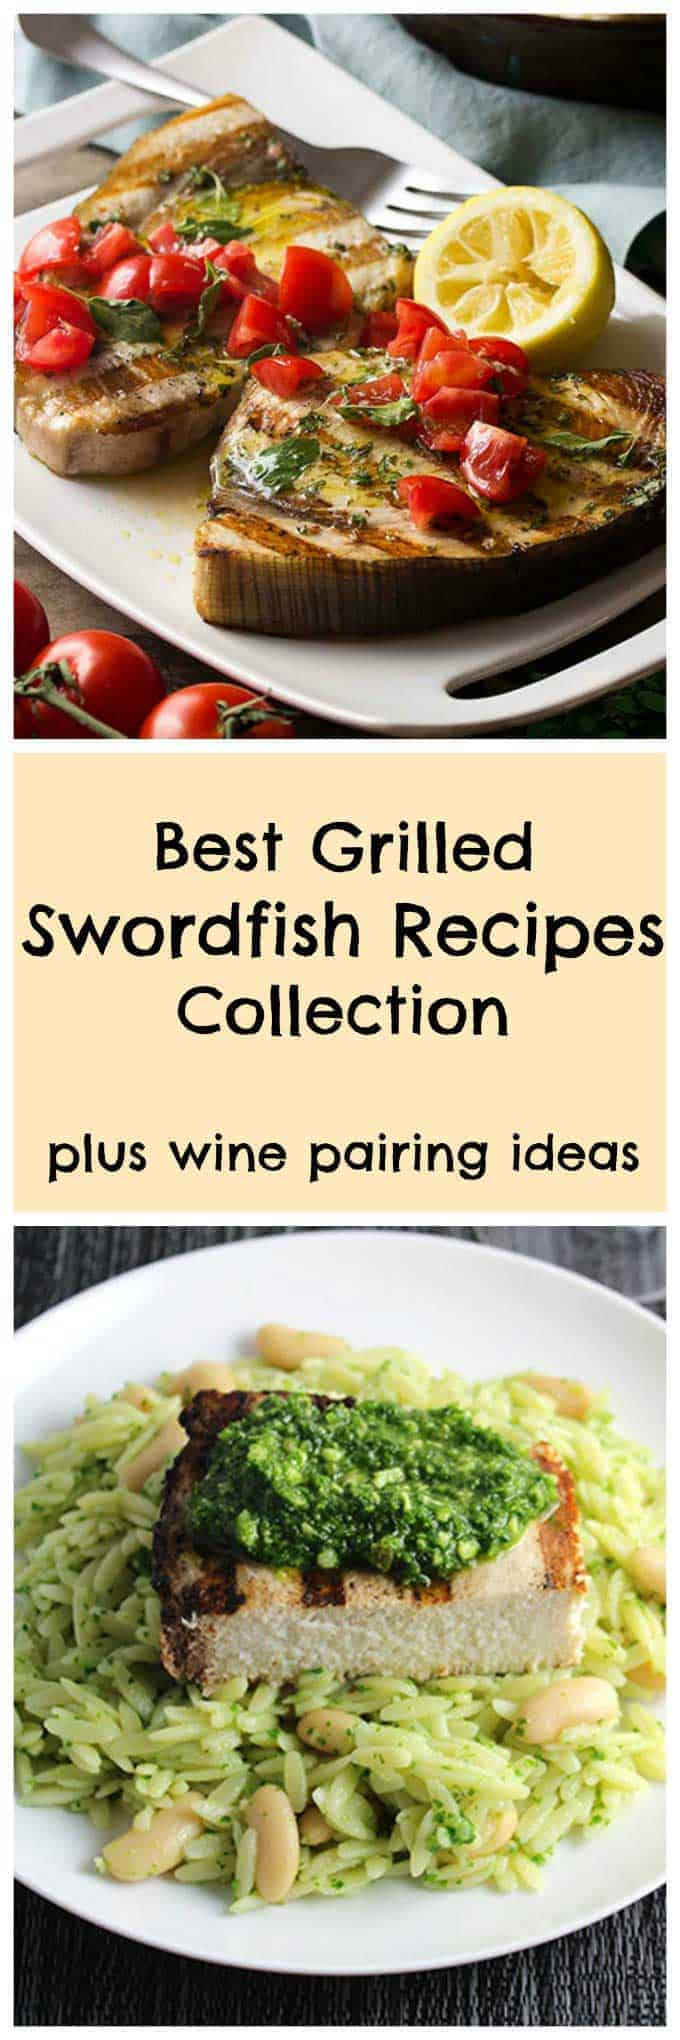 collection of grilled swordfish recipes